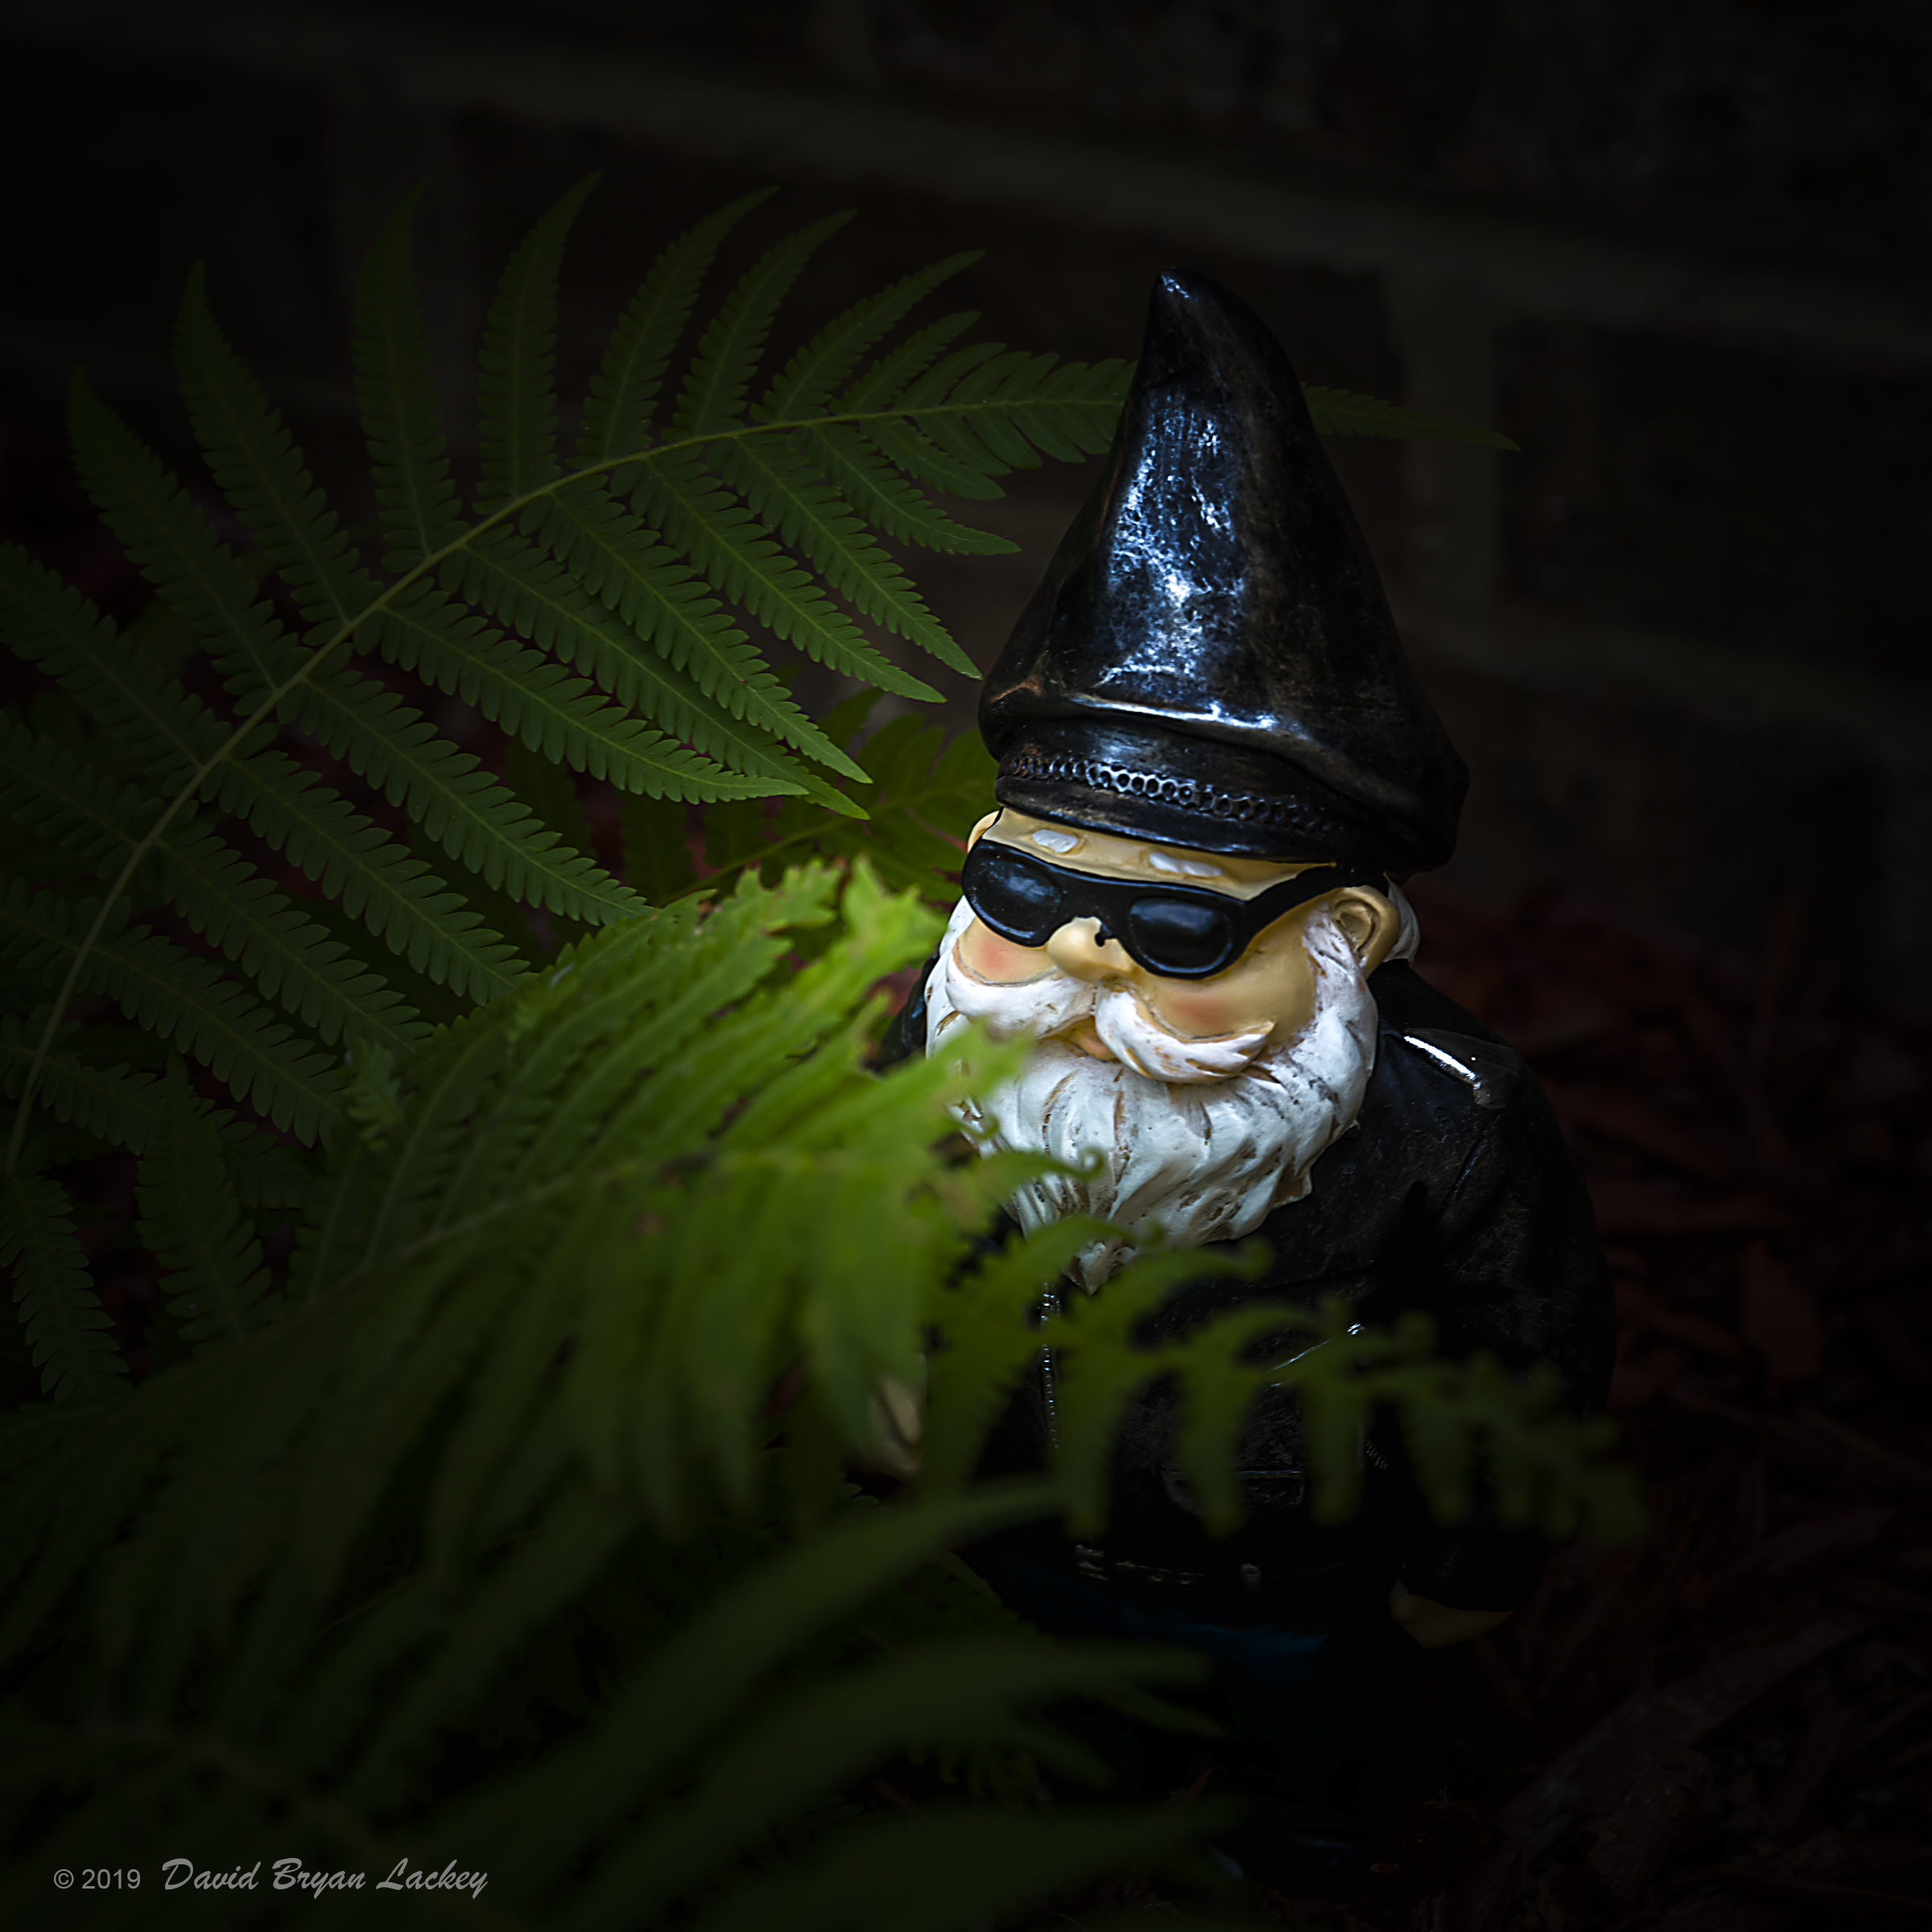 Biker Gnome in the Garden by dave.gt in dave.gt